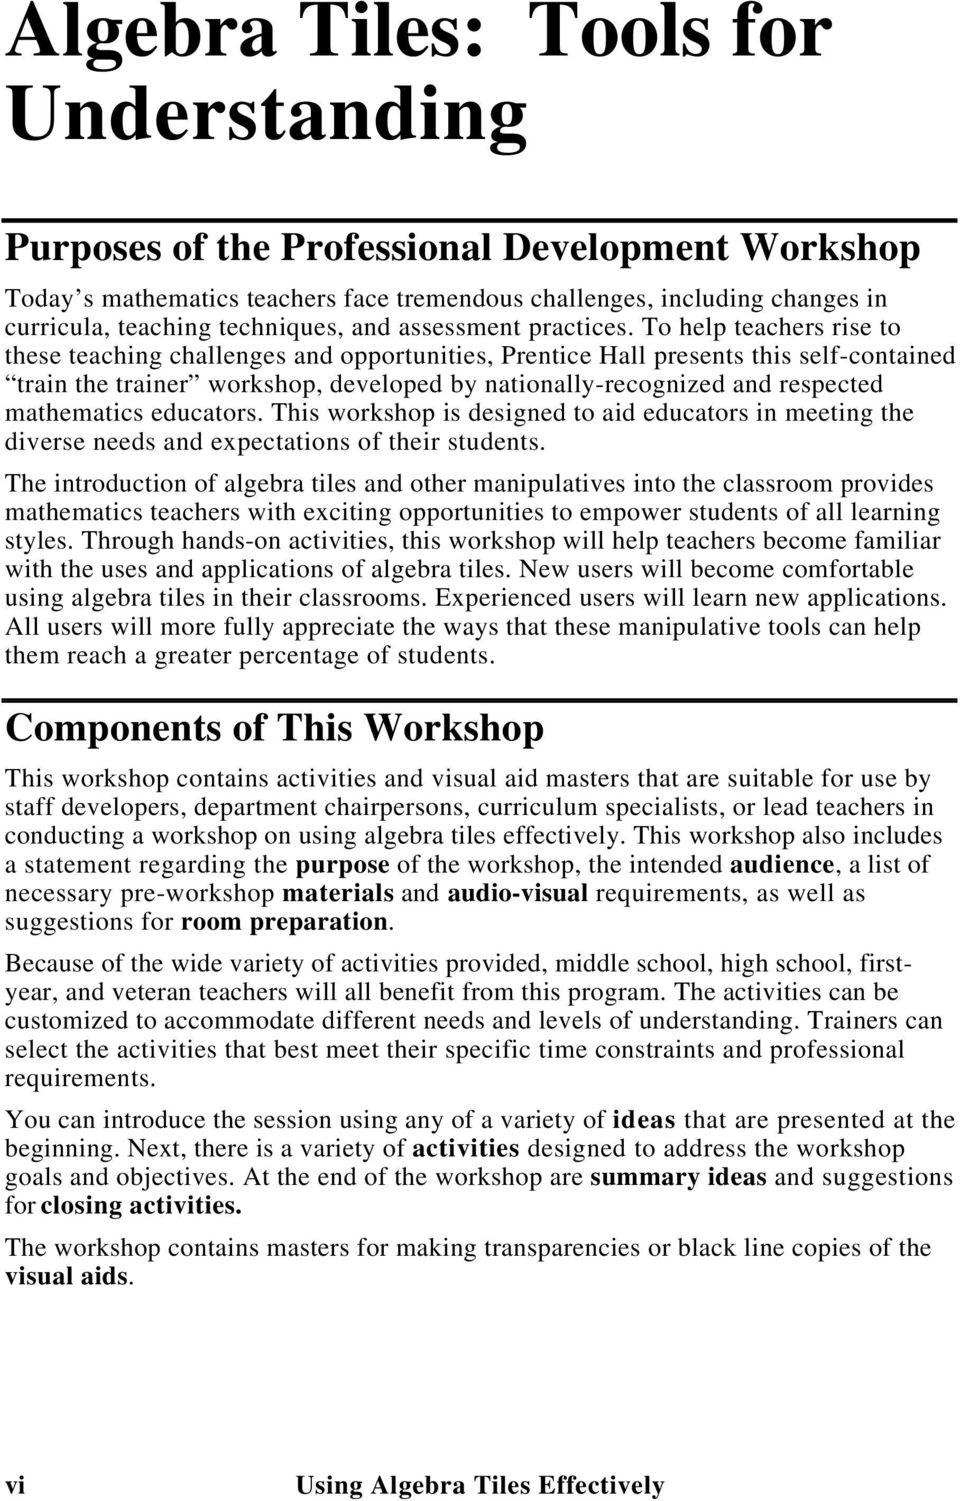 To help teachers rise to these teaching challenges and opportunities, Prentice Hall presents this self-contained train the trainer workshop, developed by nationally-recognized and respected